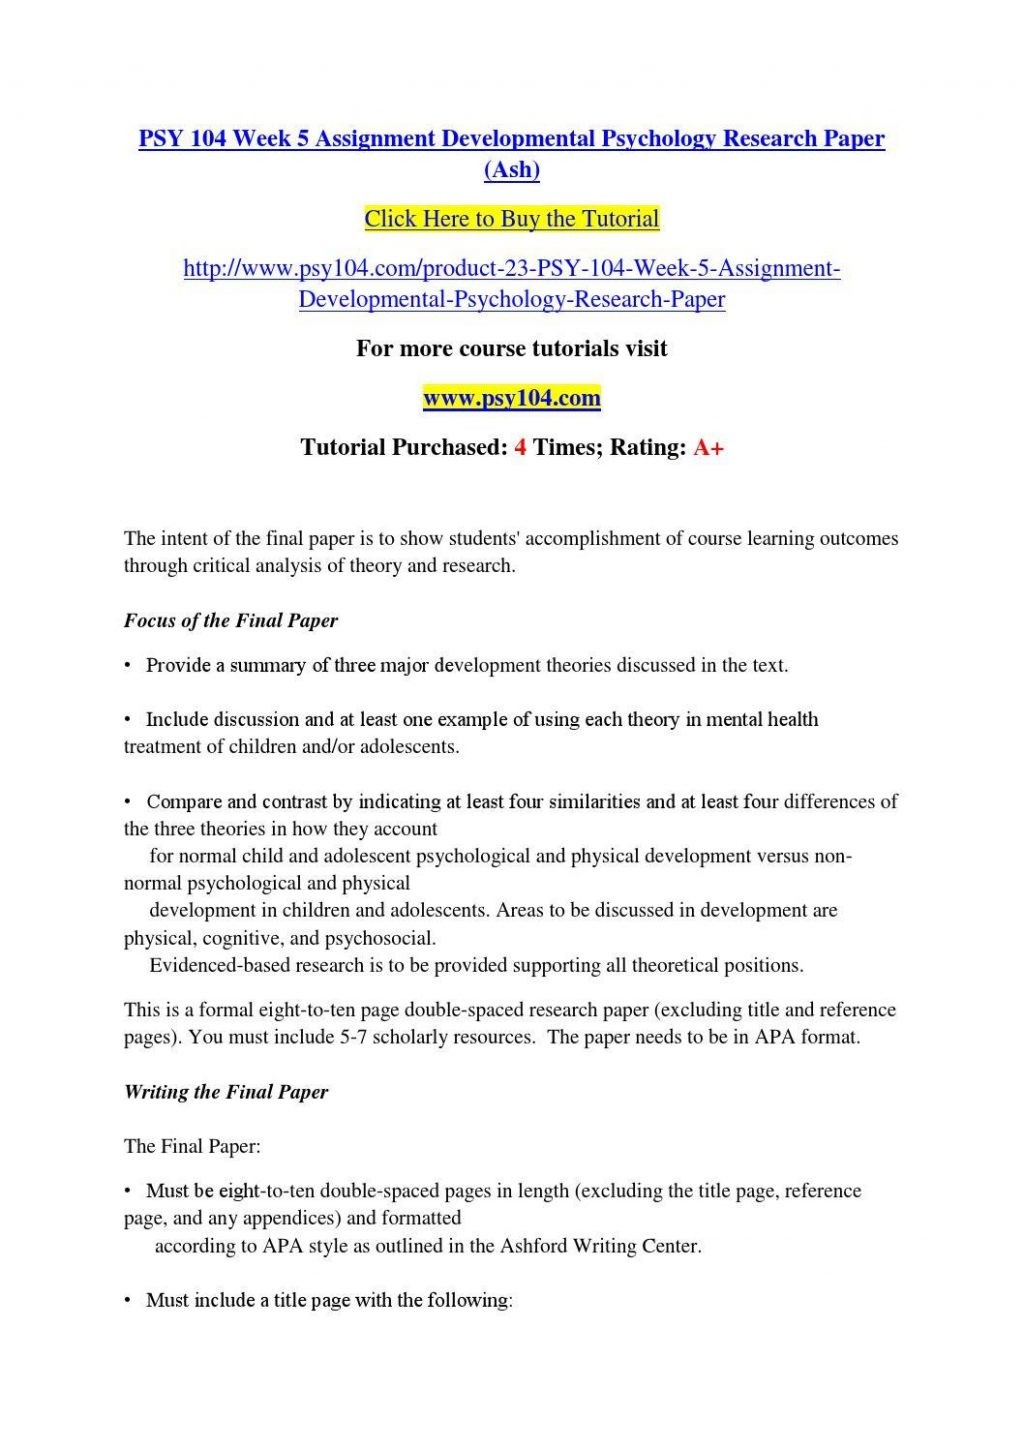 003 Developmental Psychology Essay Ideas Structure Psychological20ent Paper Topics Pdf20 1024x1449 Research Child For Dreaded Papers Large